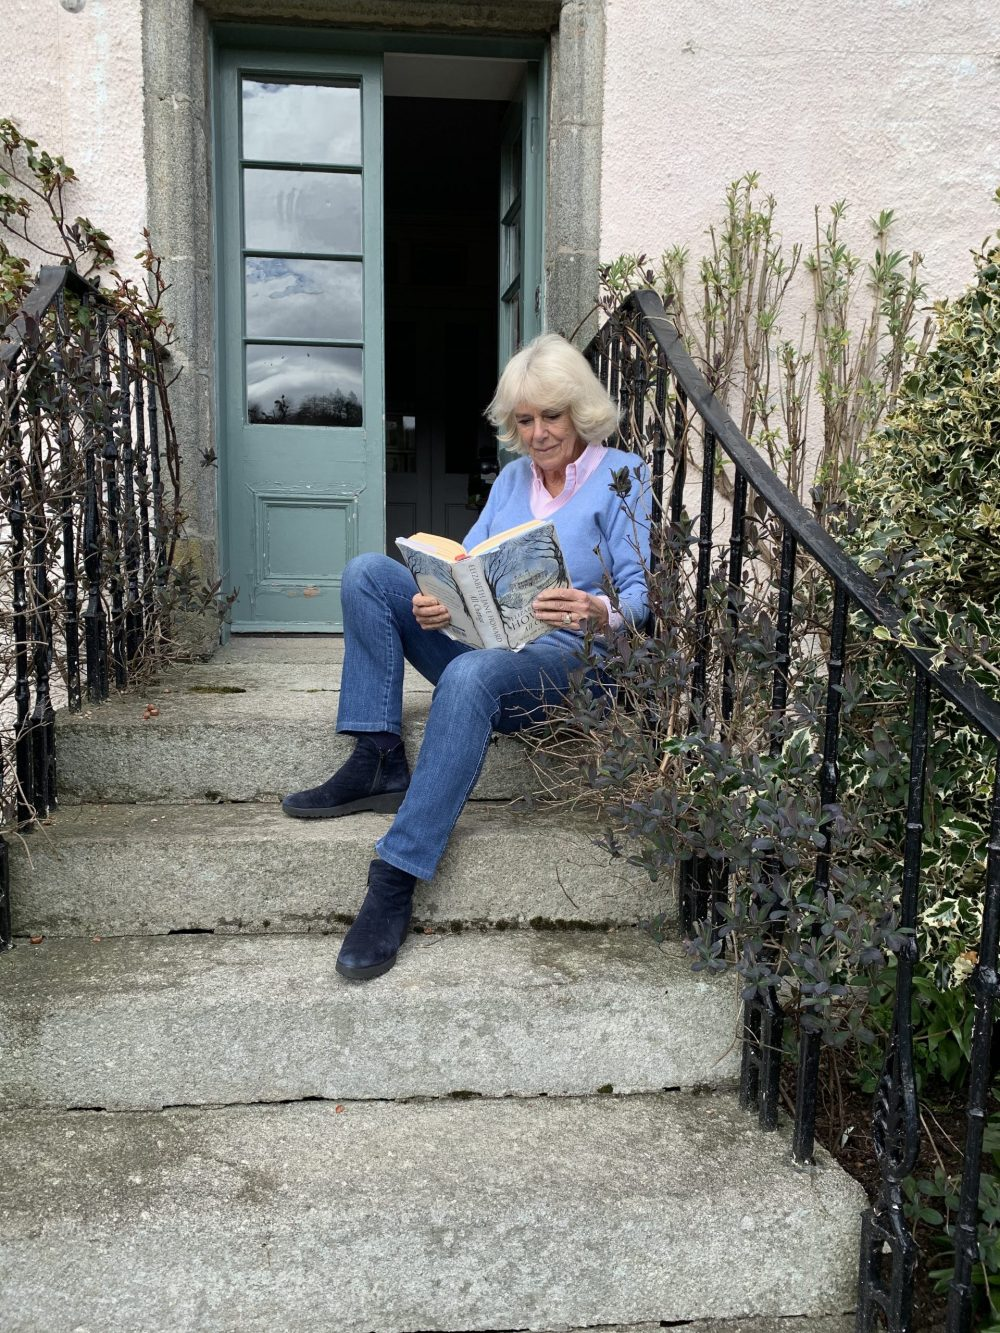 The Duchess of Cornwall reads 'All Change' - part of The Cazalet Chronicles - on a step at Birkhall (Clarence House)